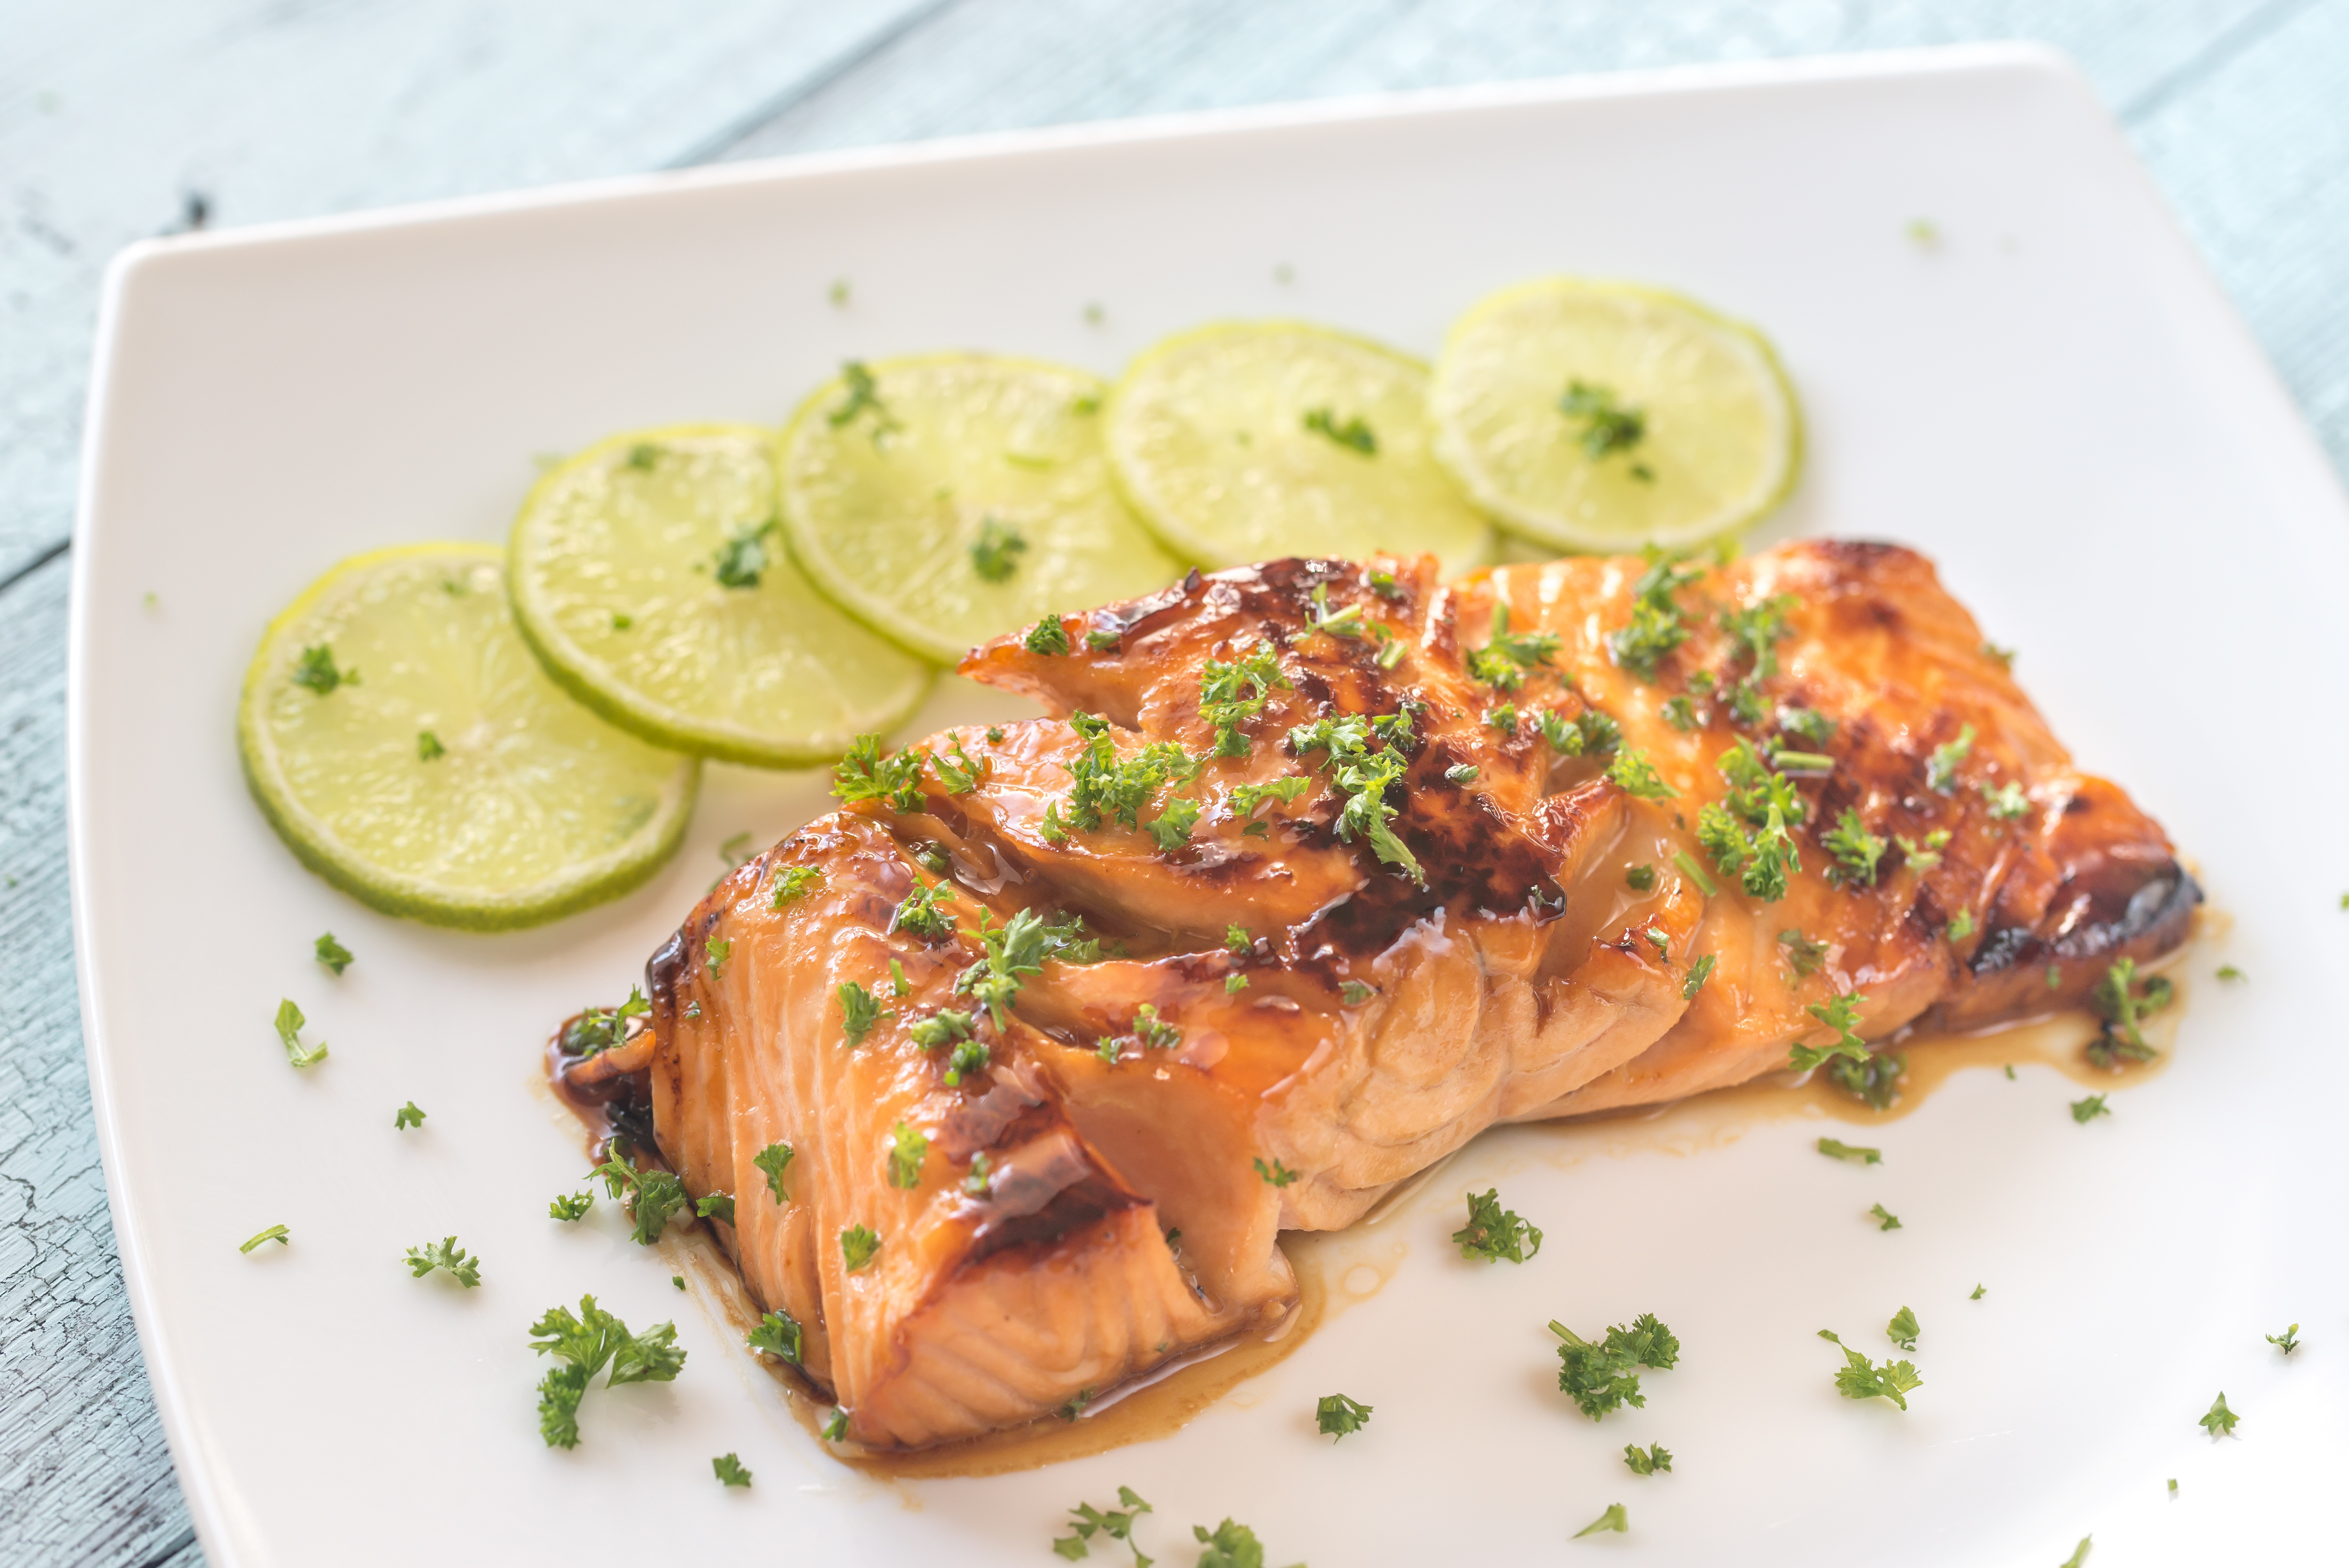 Honey lime salmon on the plate